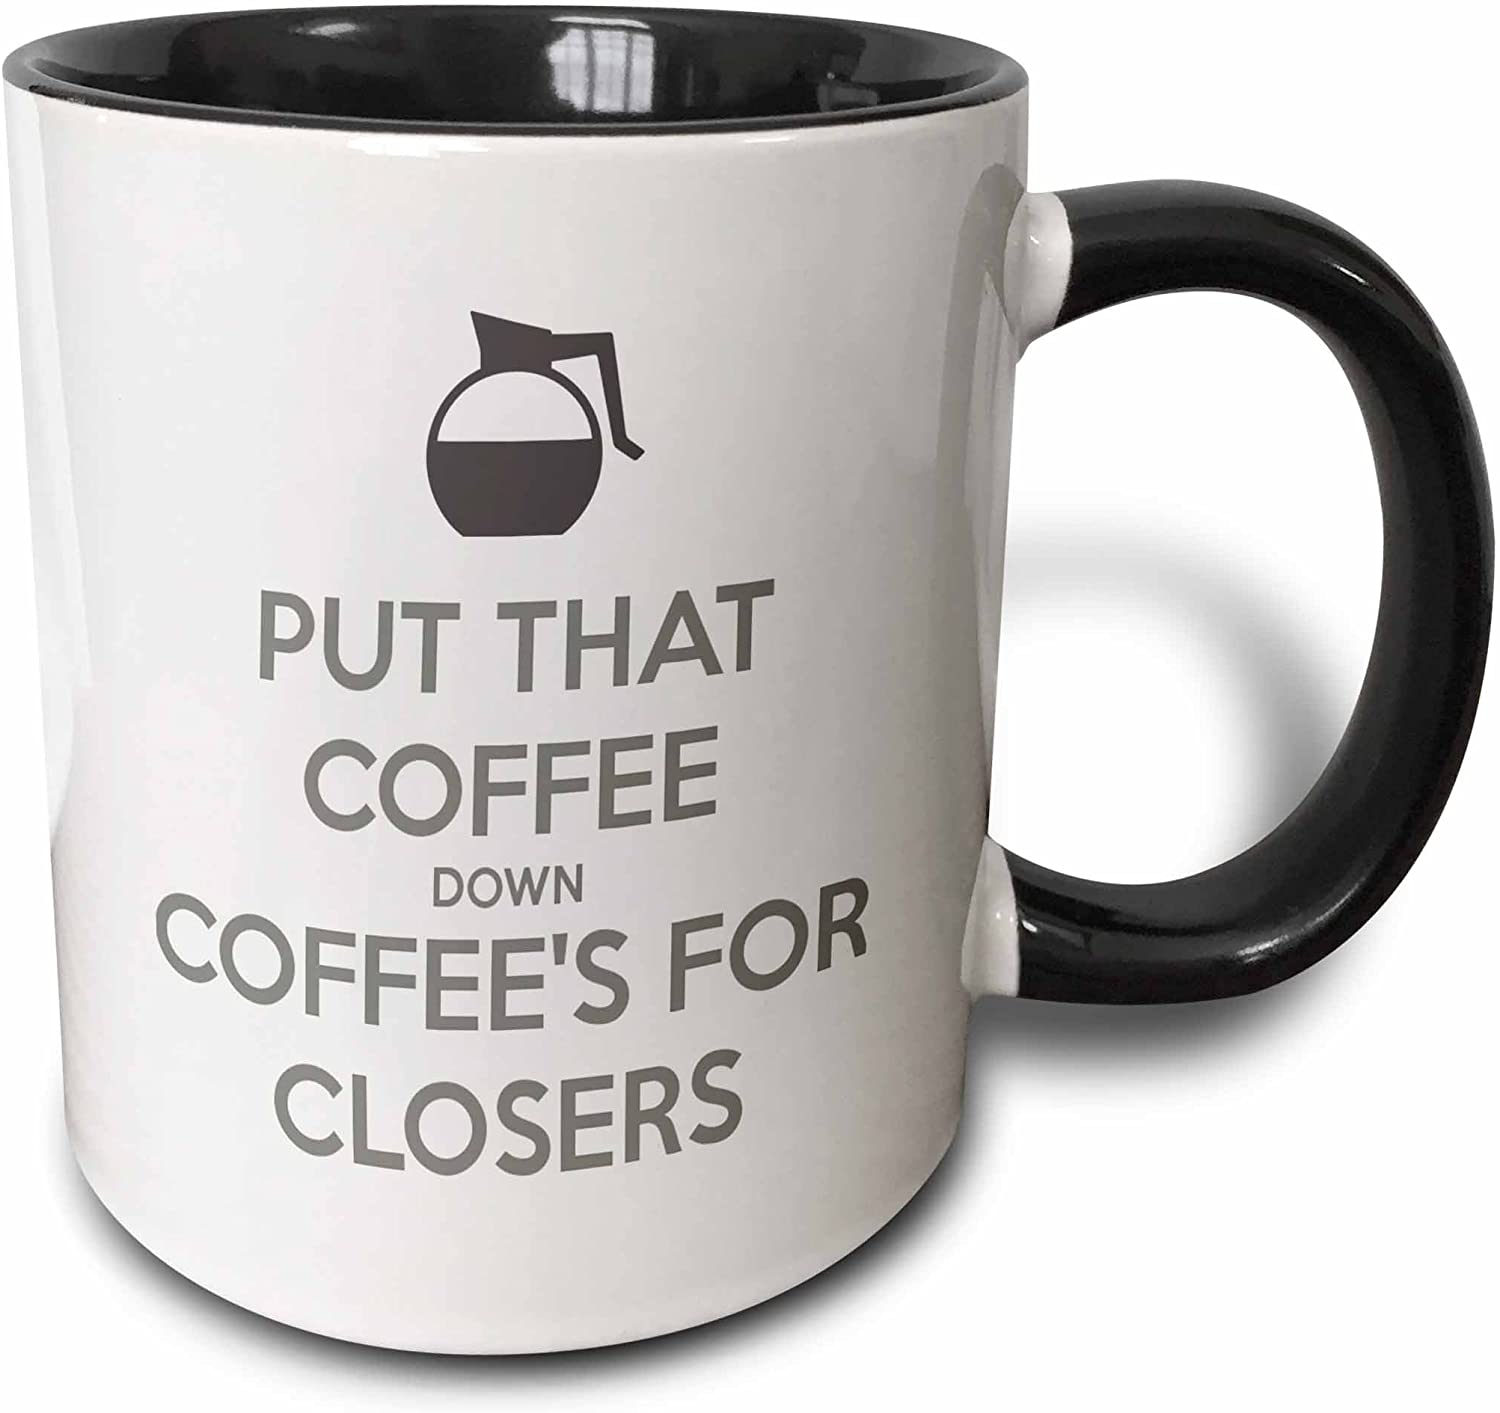 Max 68% OFF 3dRose Put Coffee's for Closers New product! New type Mug oz Black 11